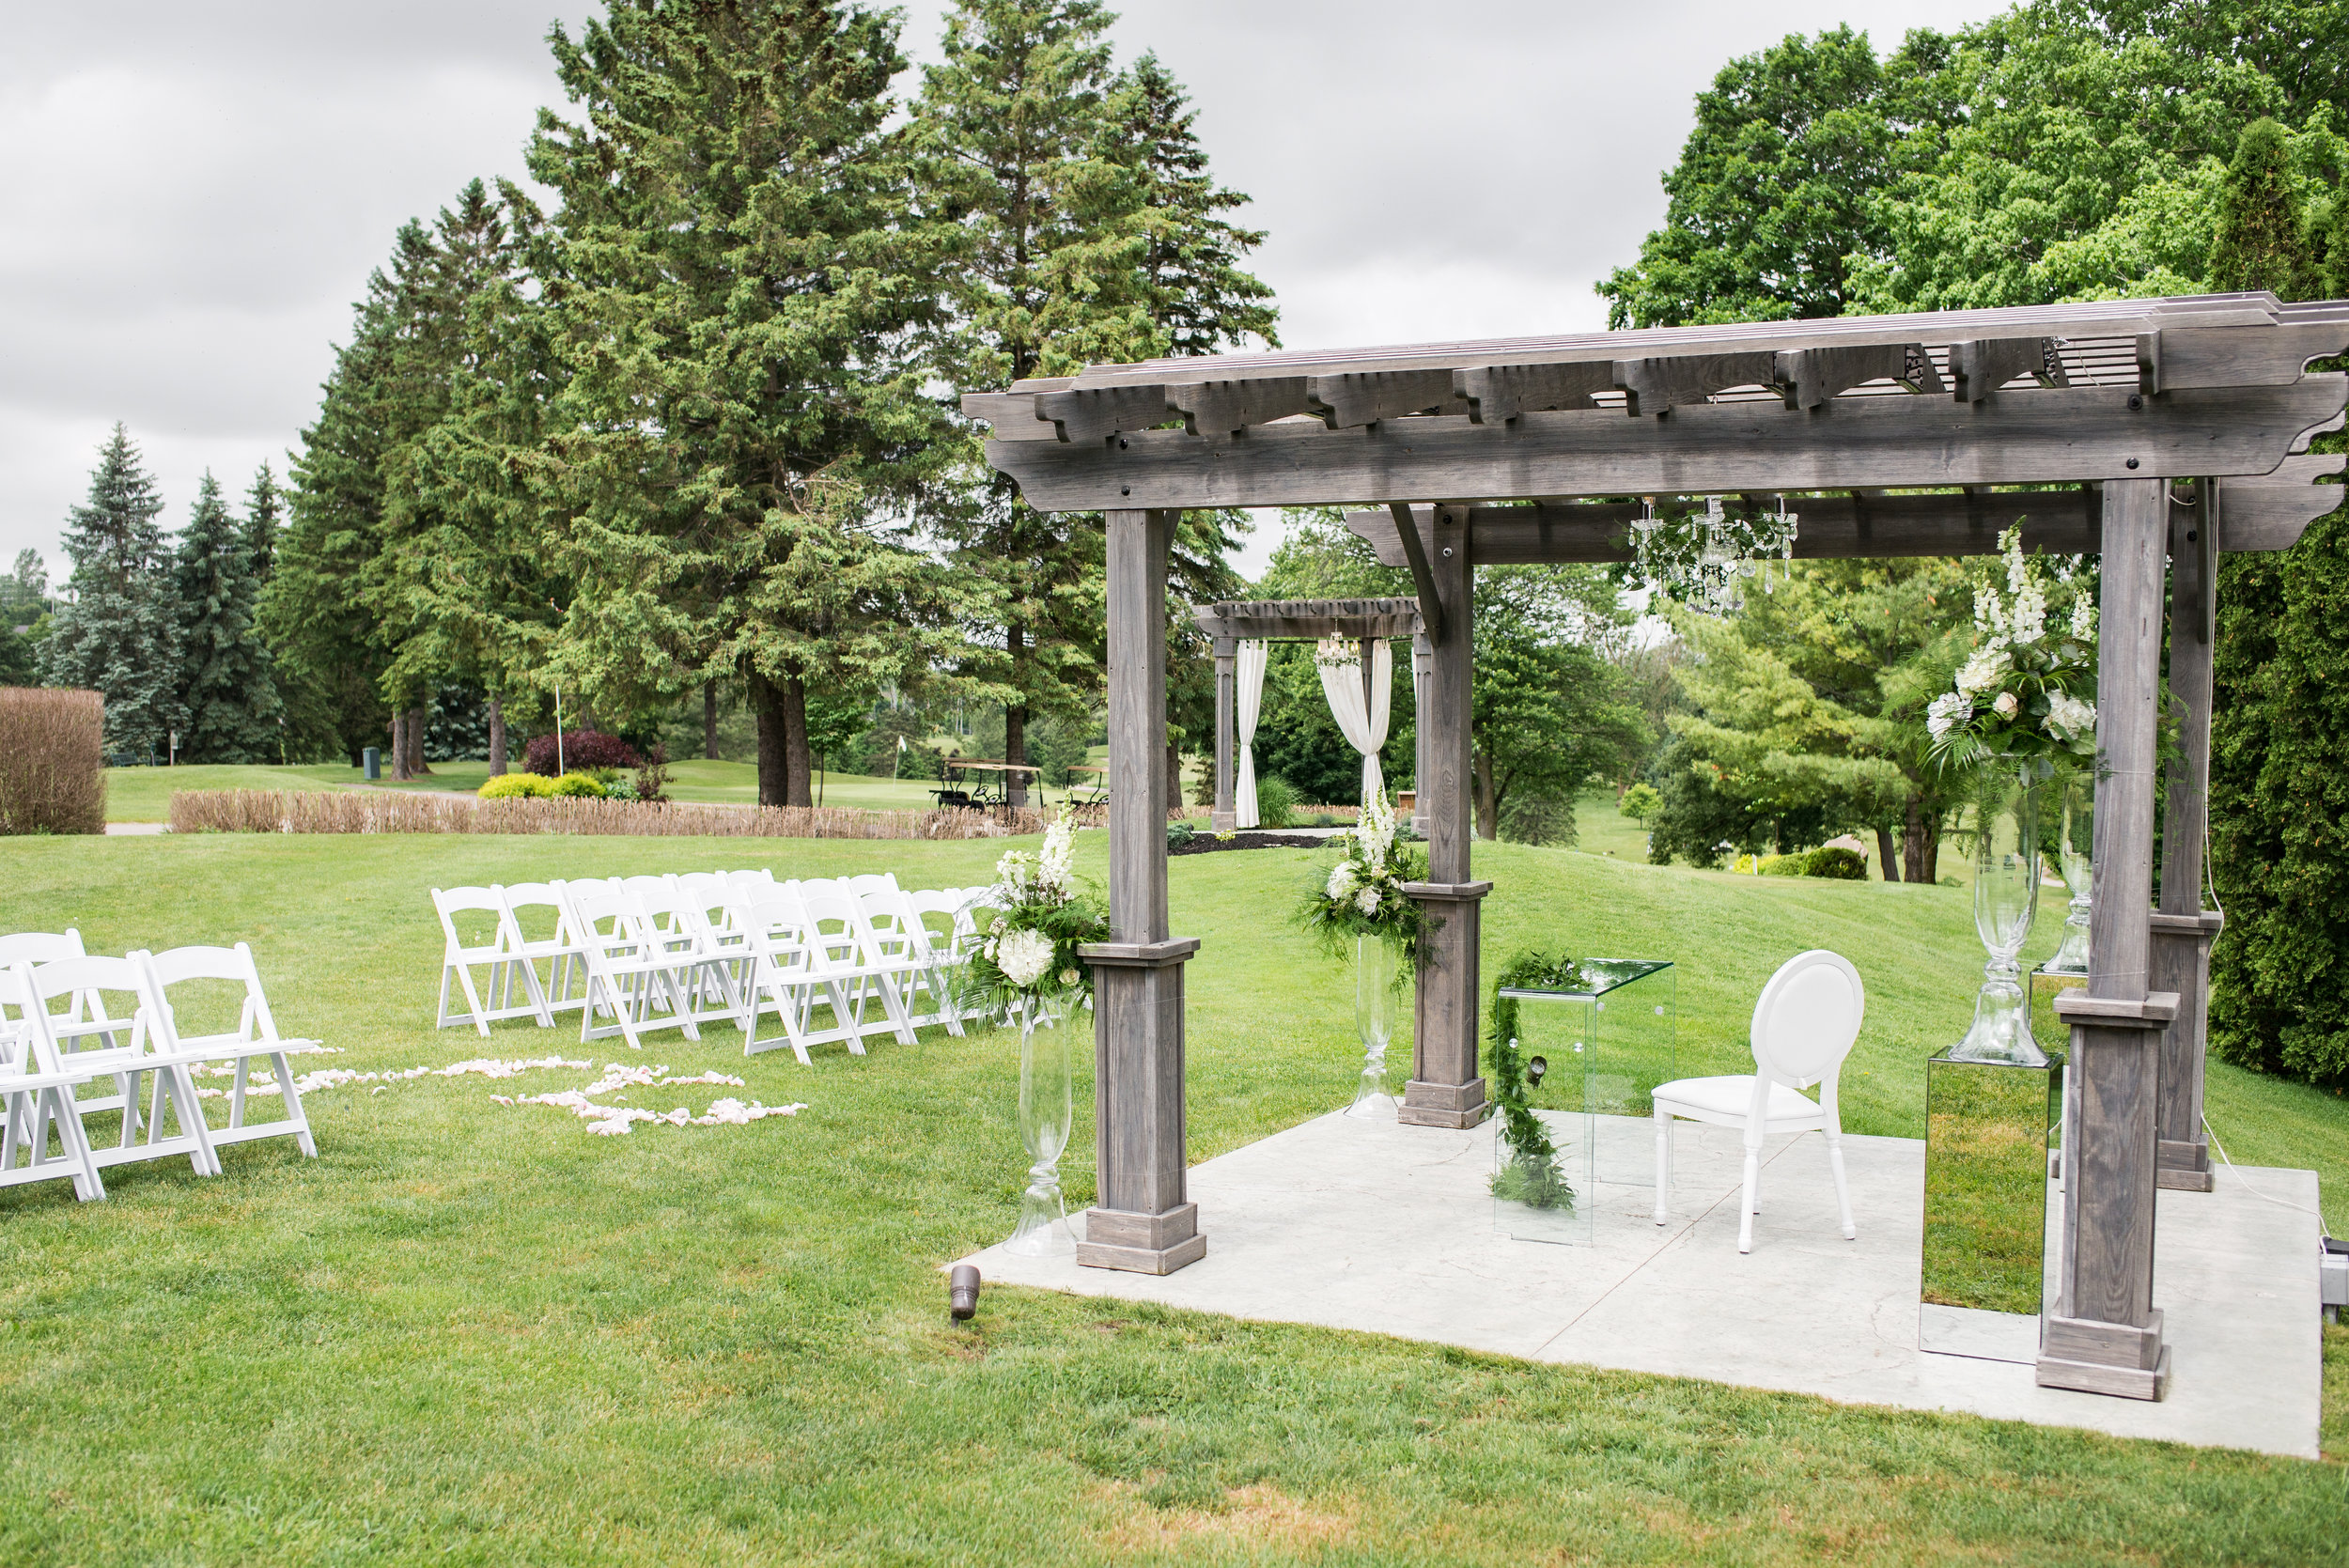 Both the ceremony and signing Ballroom pergolas were dressed with matching crystal chandeliers, courtesy of Above & Beyond Event Design.